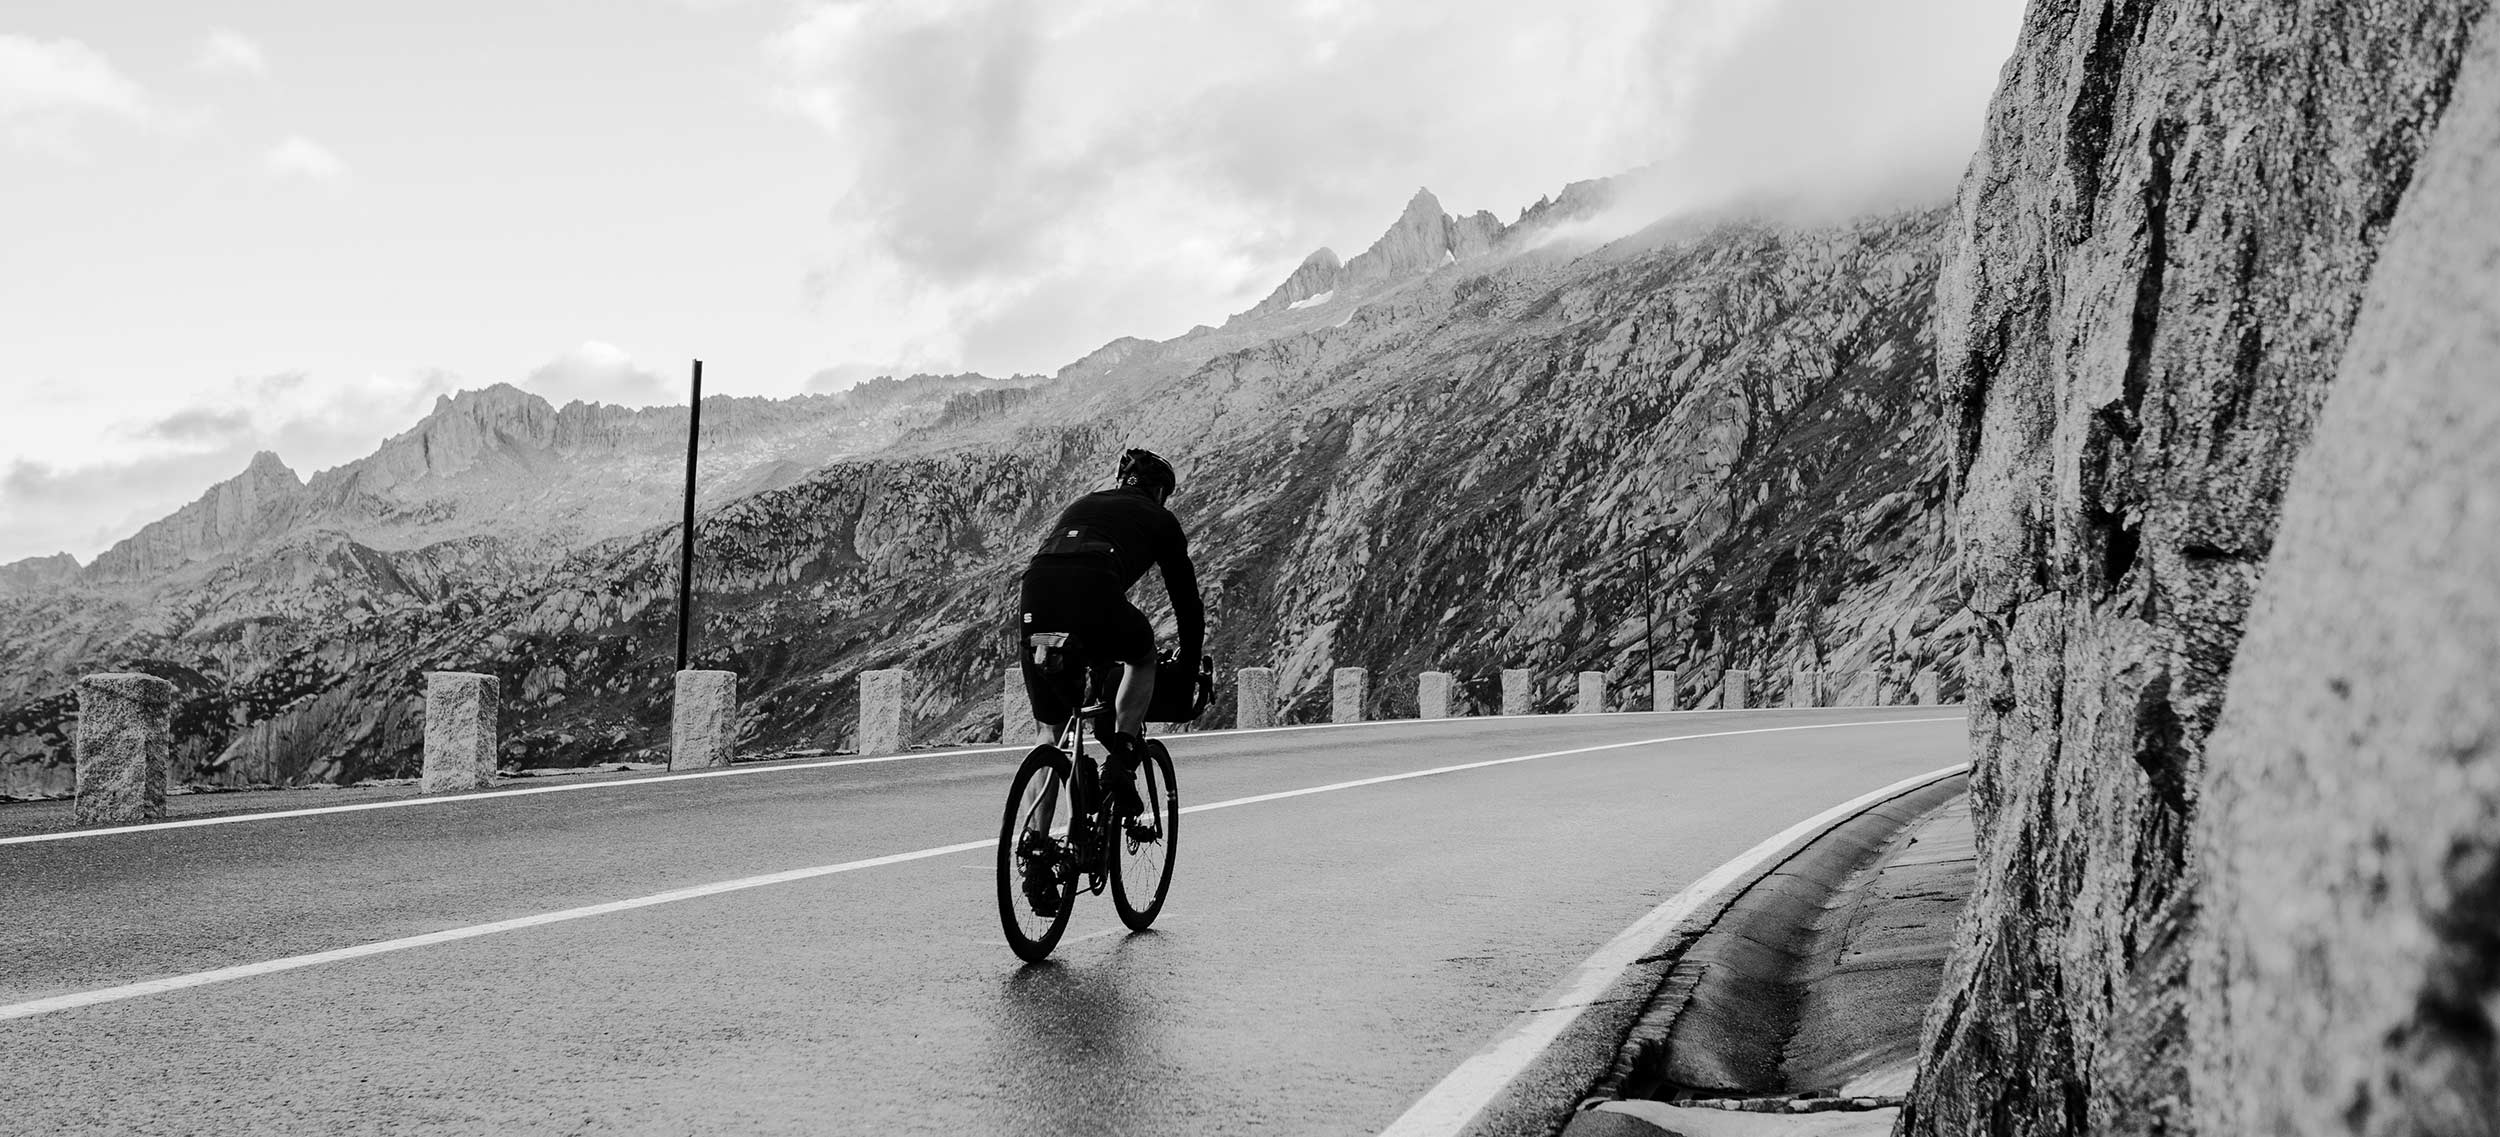 A man in a bikepacking race through a road surrounded by mountains